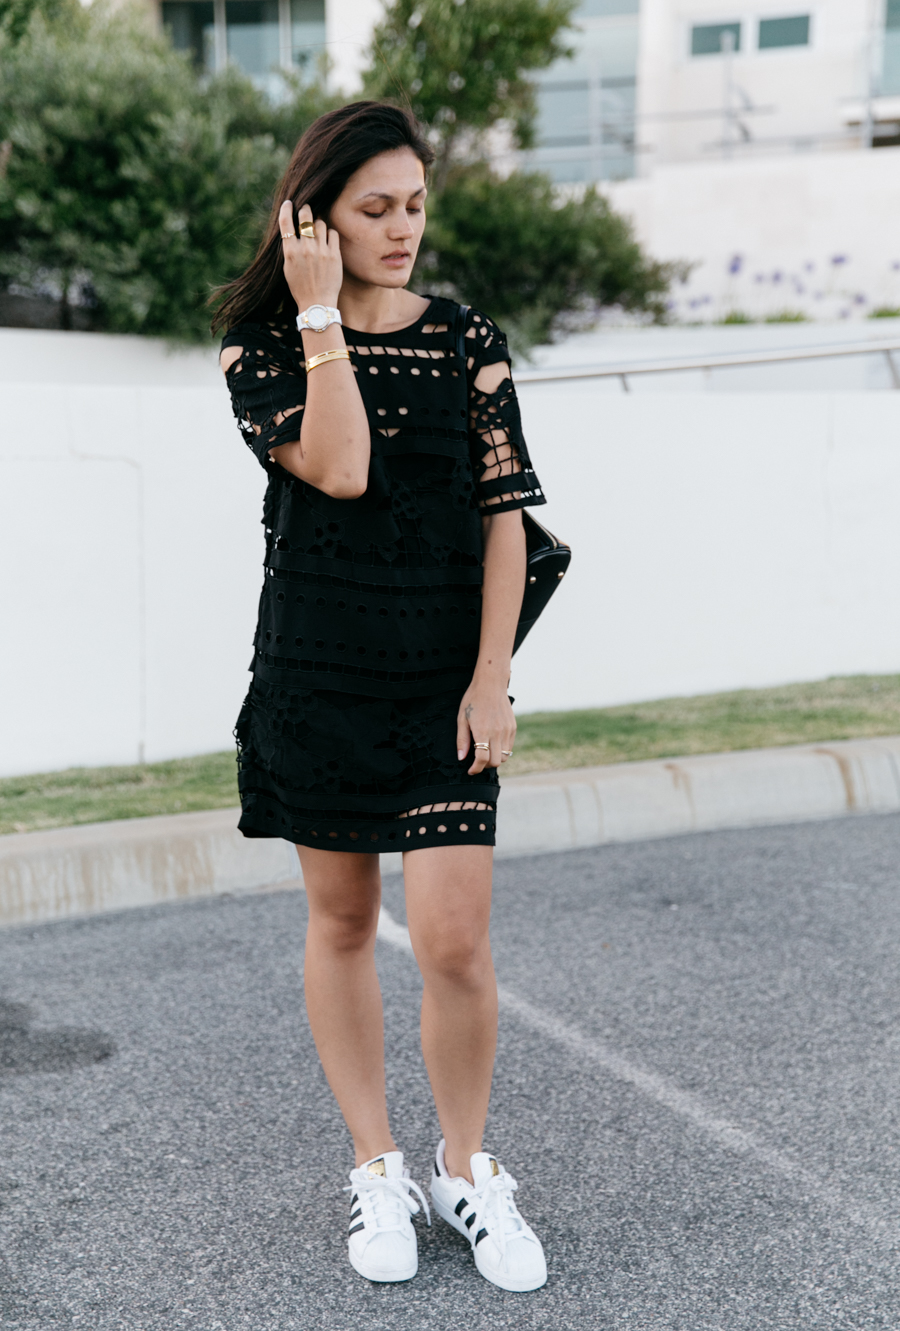 Casual style lace dress with Adidas sneakers.